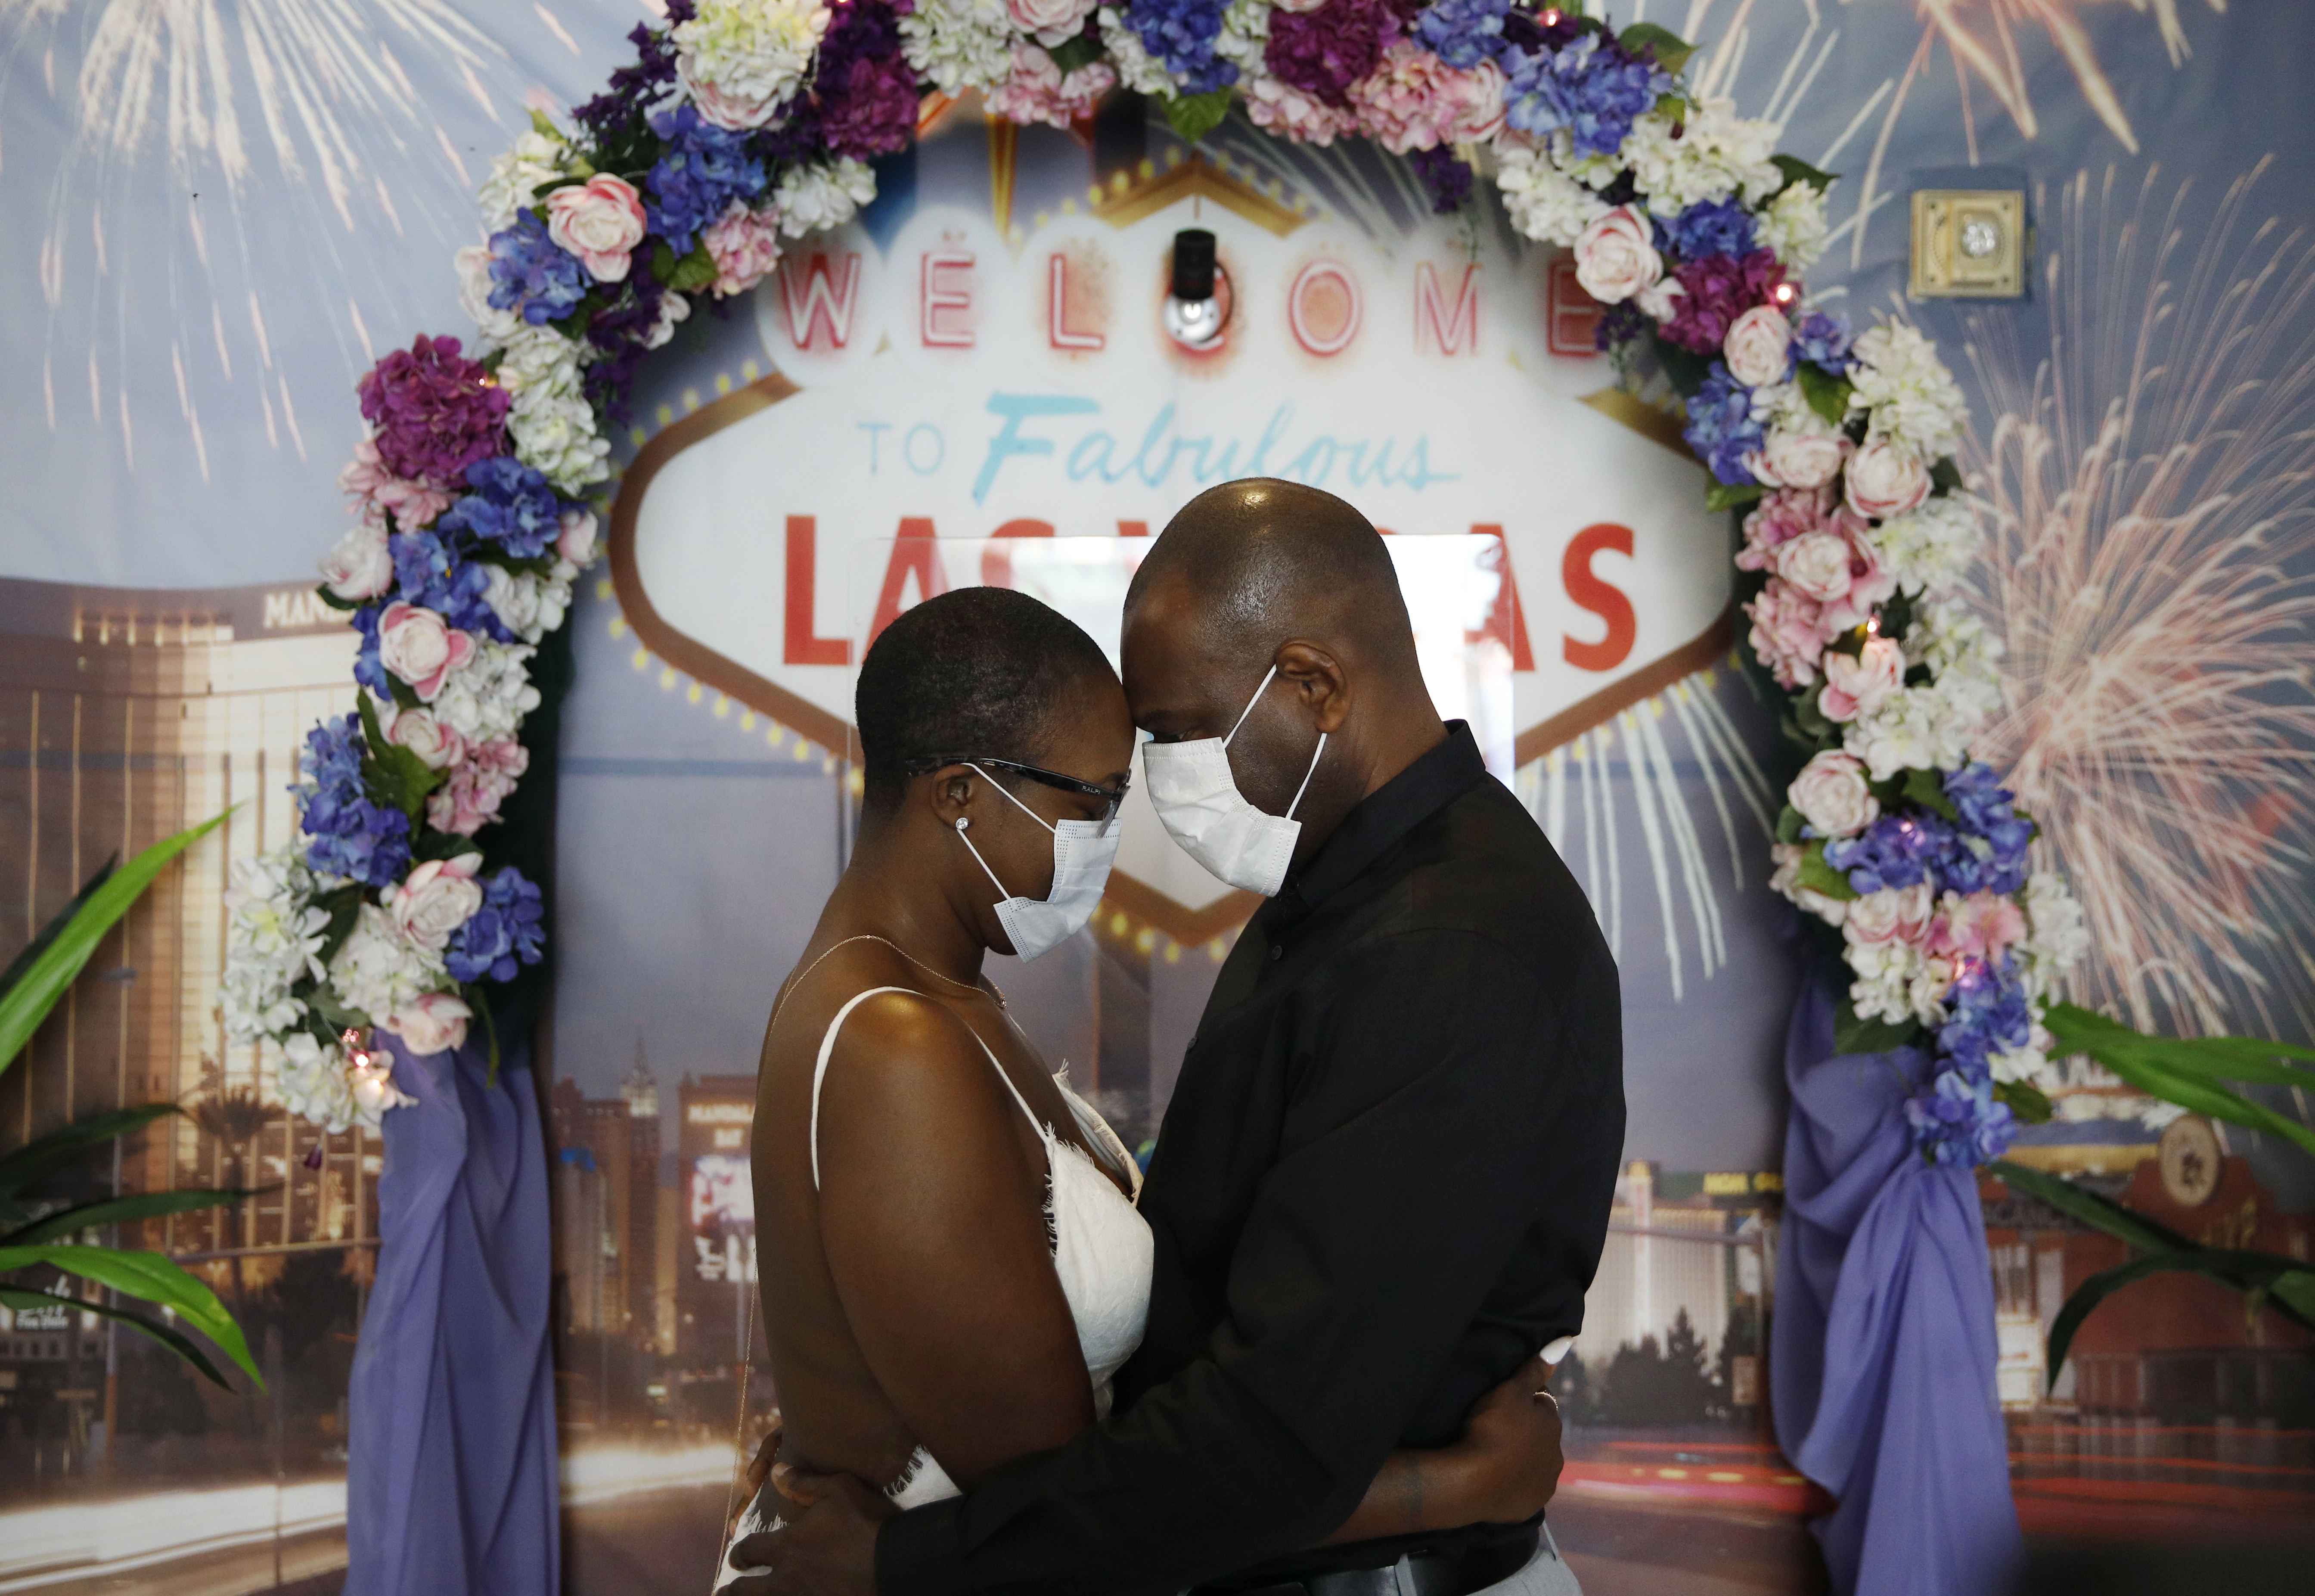 LaTahja Frazier, left, and Laborskie Frazier pose for their wedding photographer after getting married at The Little Neon Chapel, May 10, 2020, in Las Vegas.